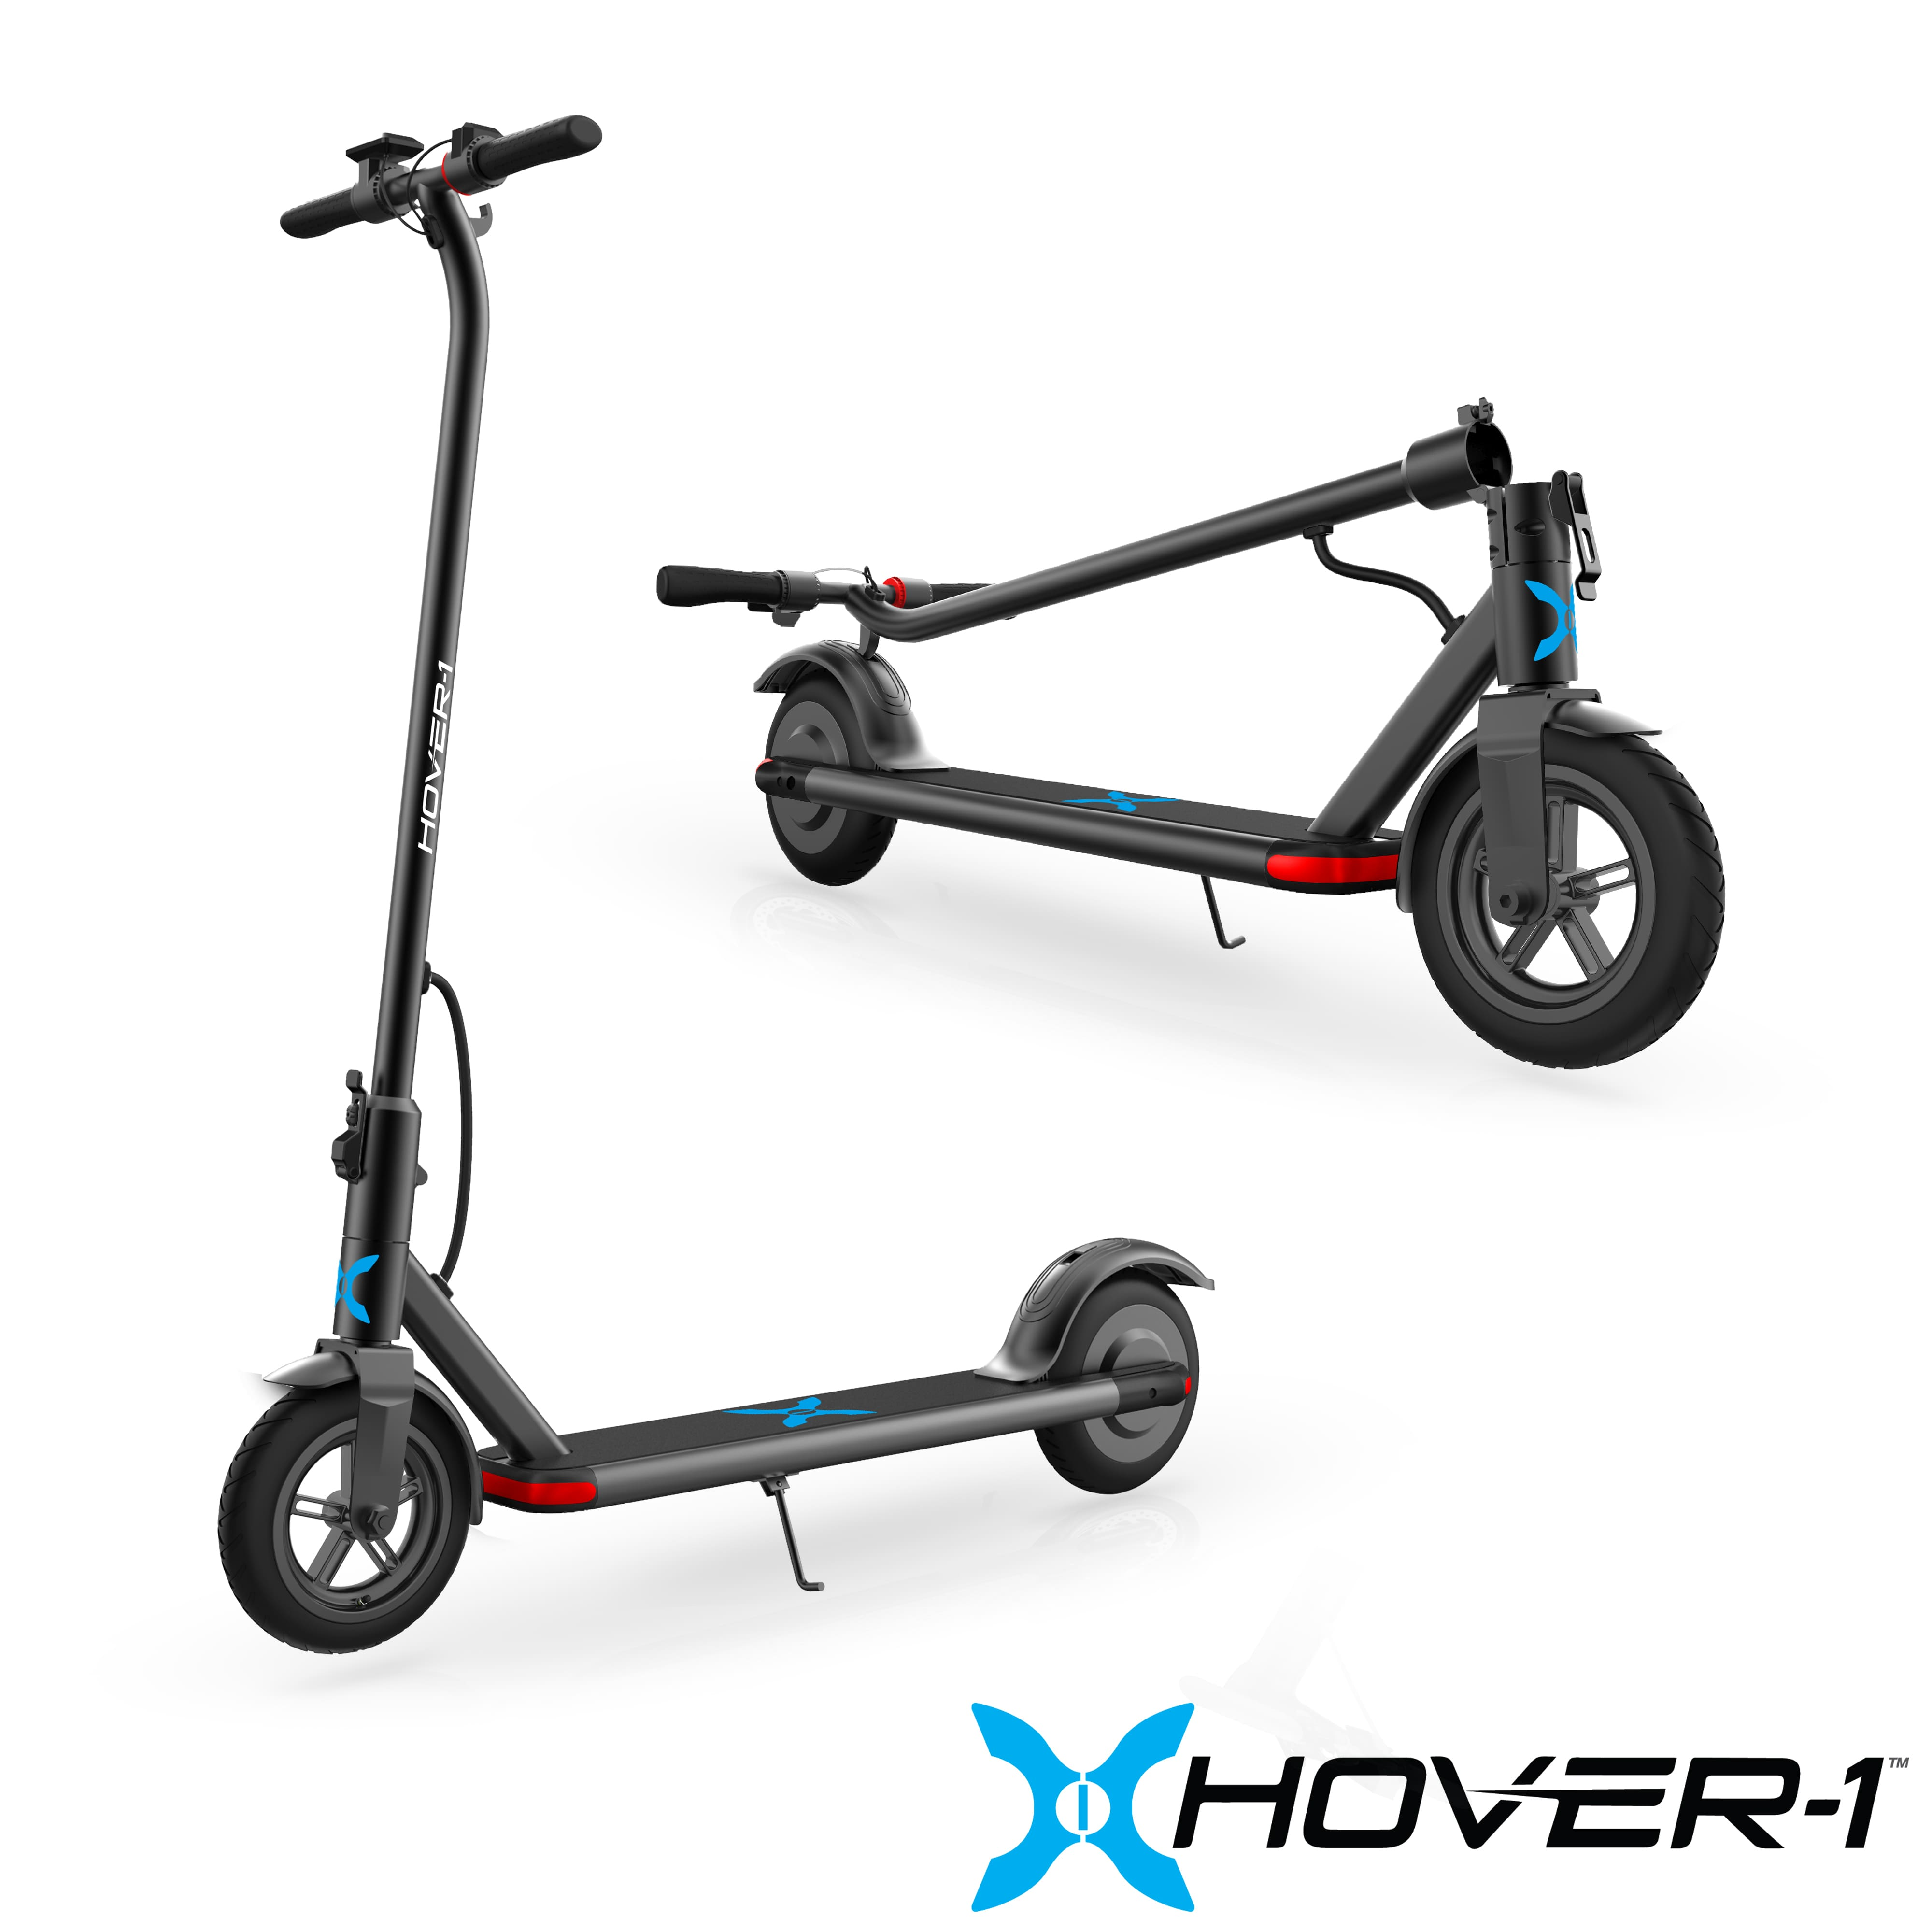 $149 Hover-1 Dynamo Electric Folding Scooter, LCD Display, Air-Filled Tires, 16 MPH Max Speed